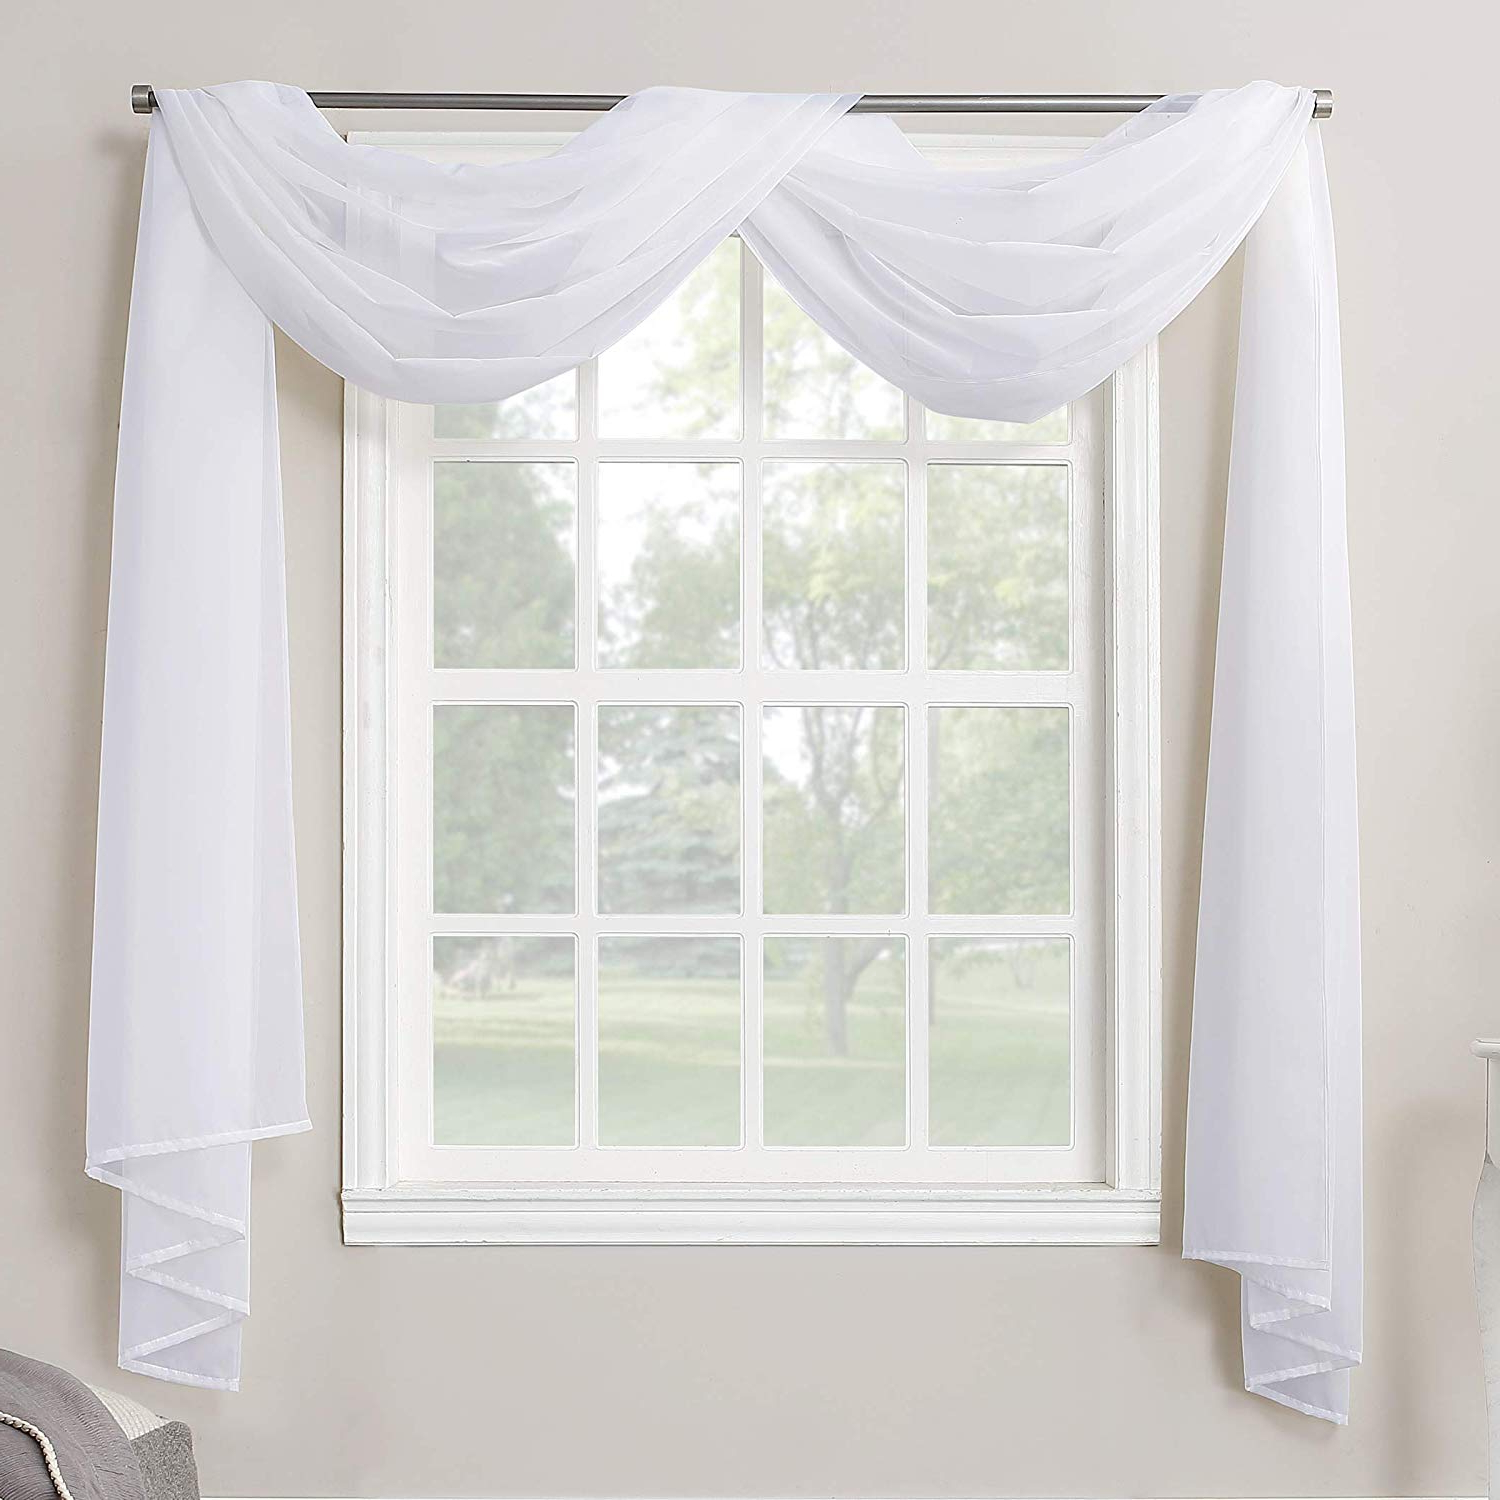 Widely Used Emily Sheer Voile Single Curtain Panels With Regard To No (View 7 of 20)